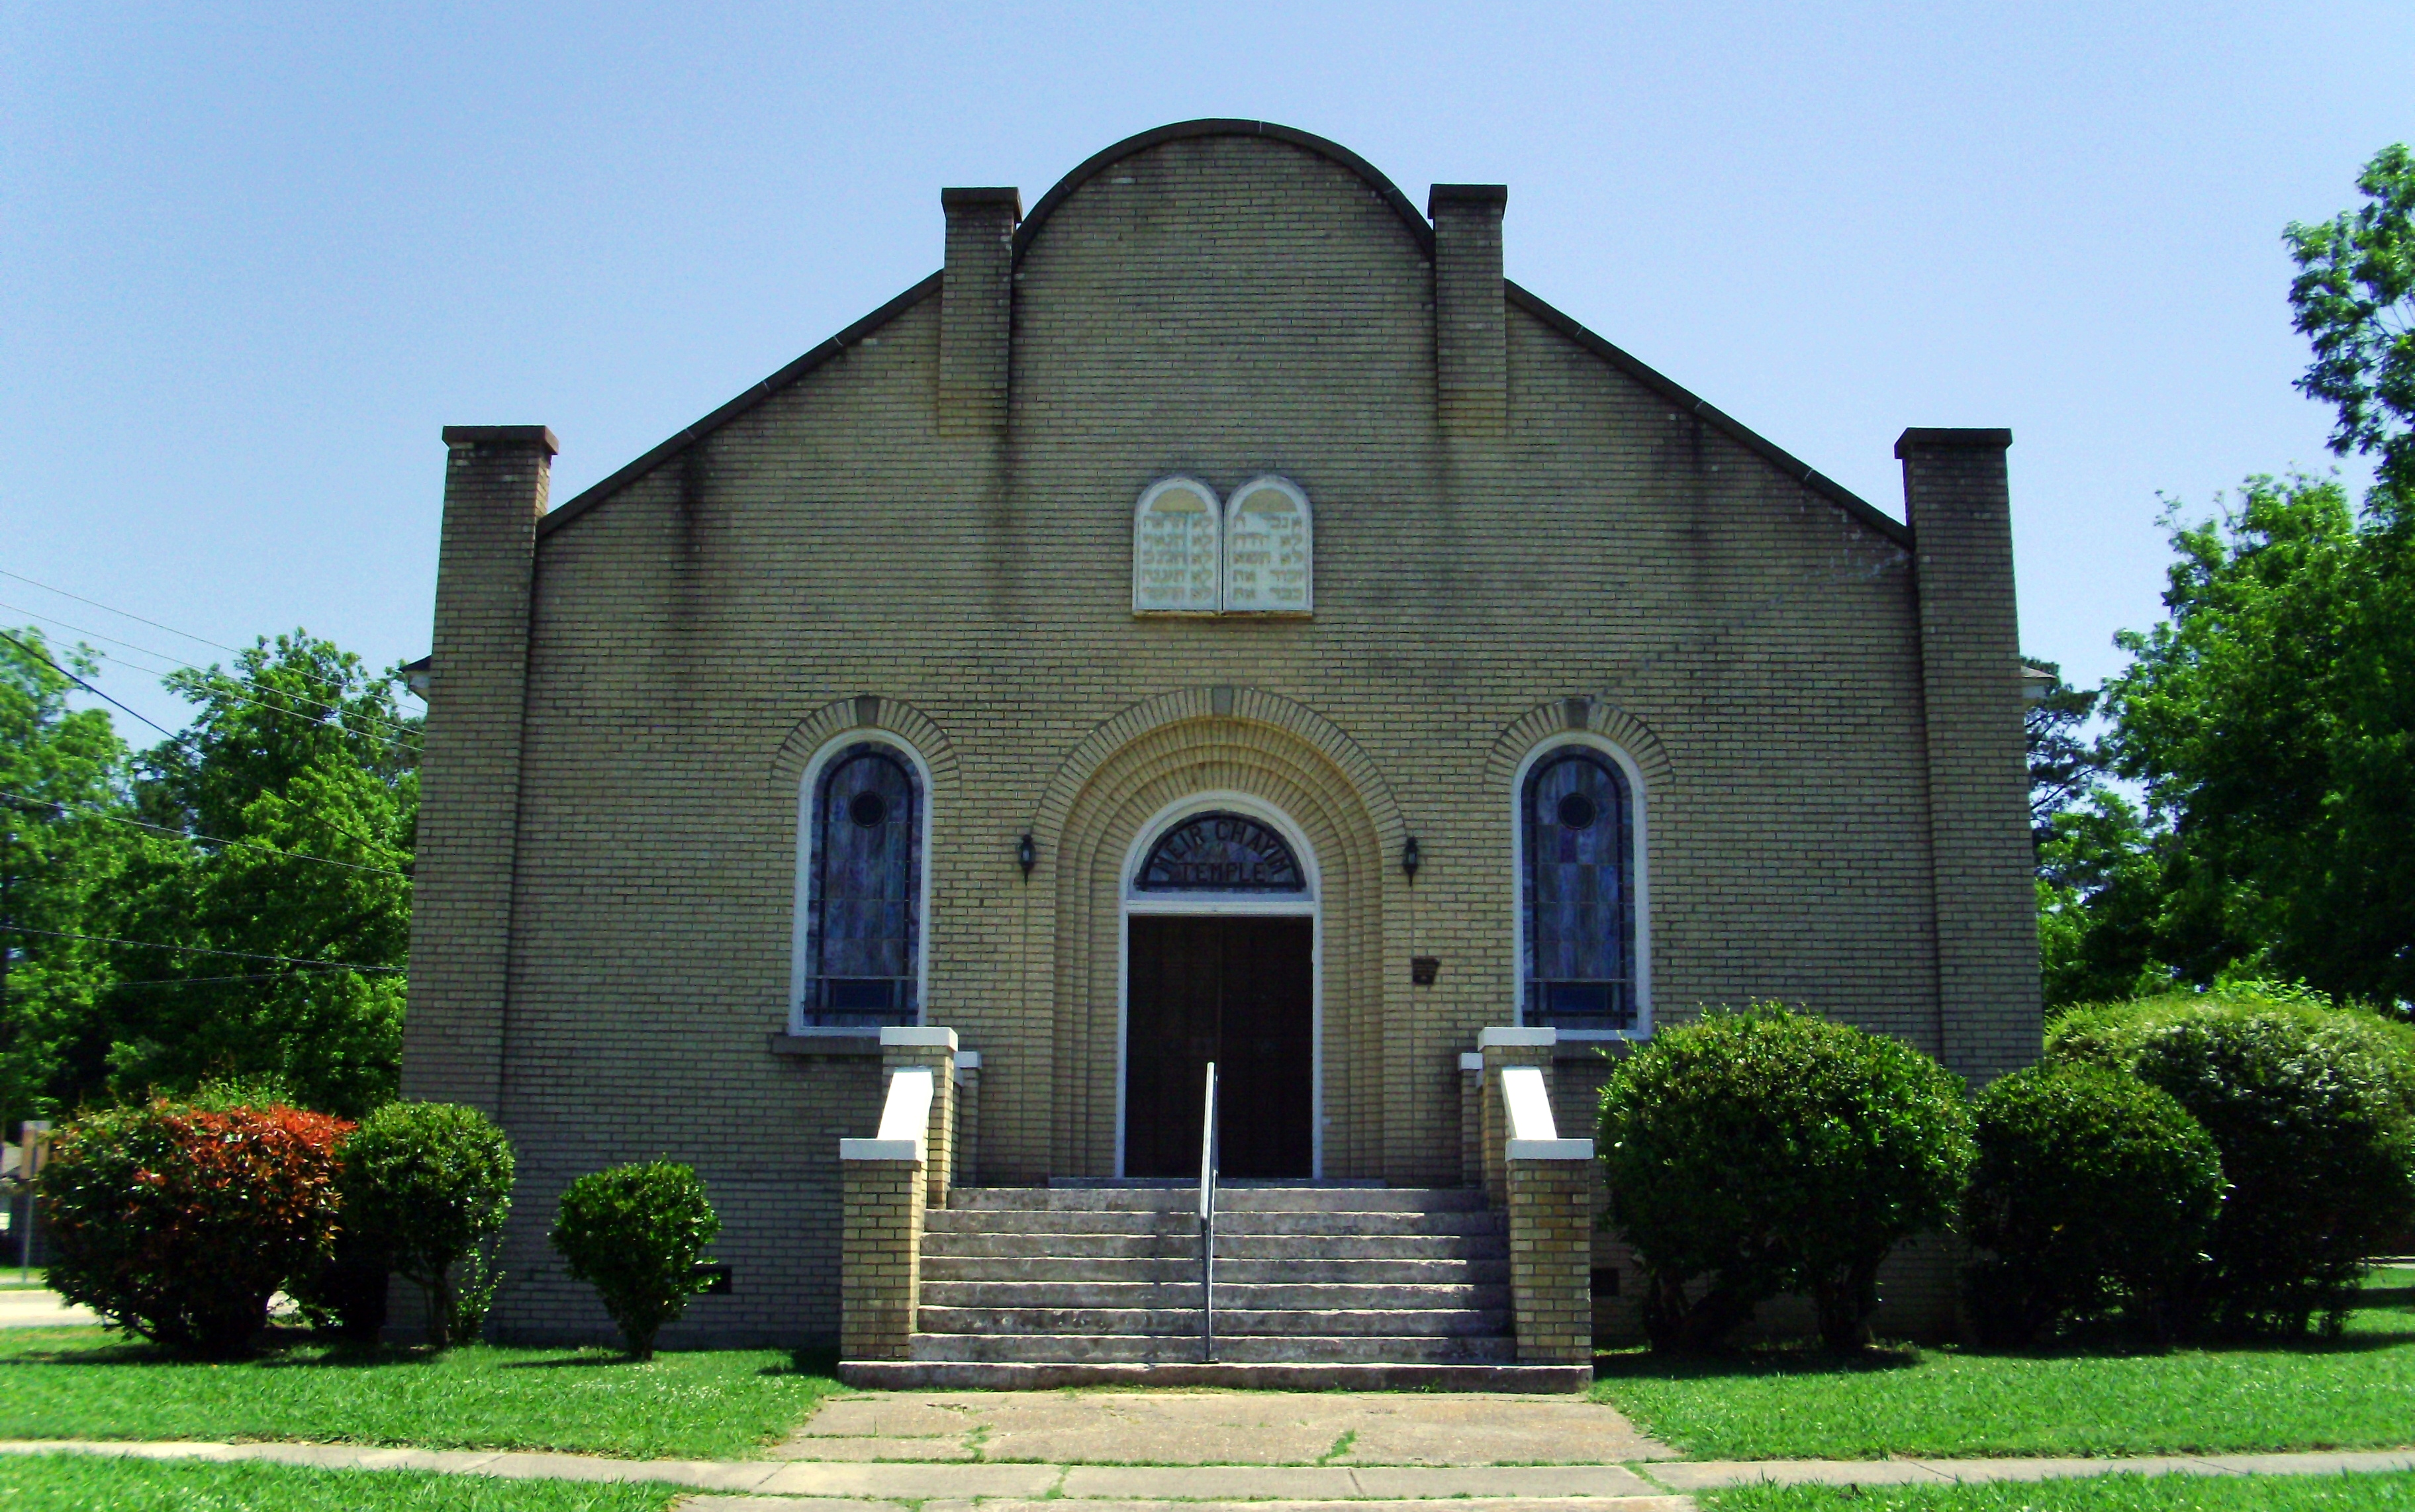 Temple Meir Chayim was built in 1947 is listed on the National Register of Historic Places.